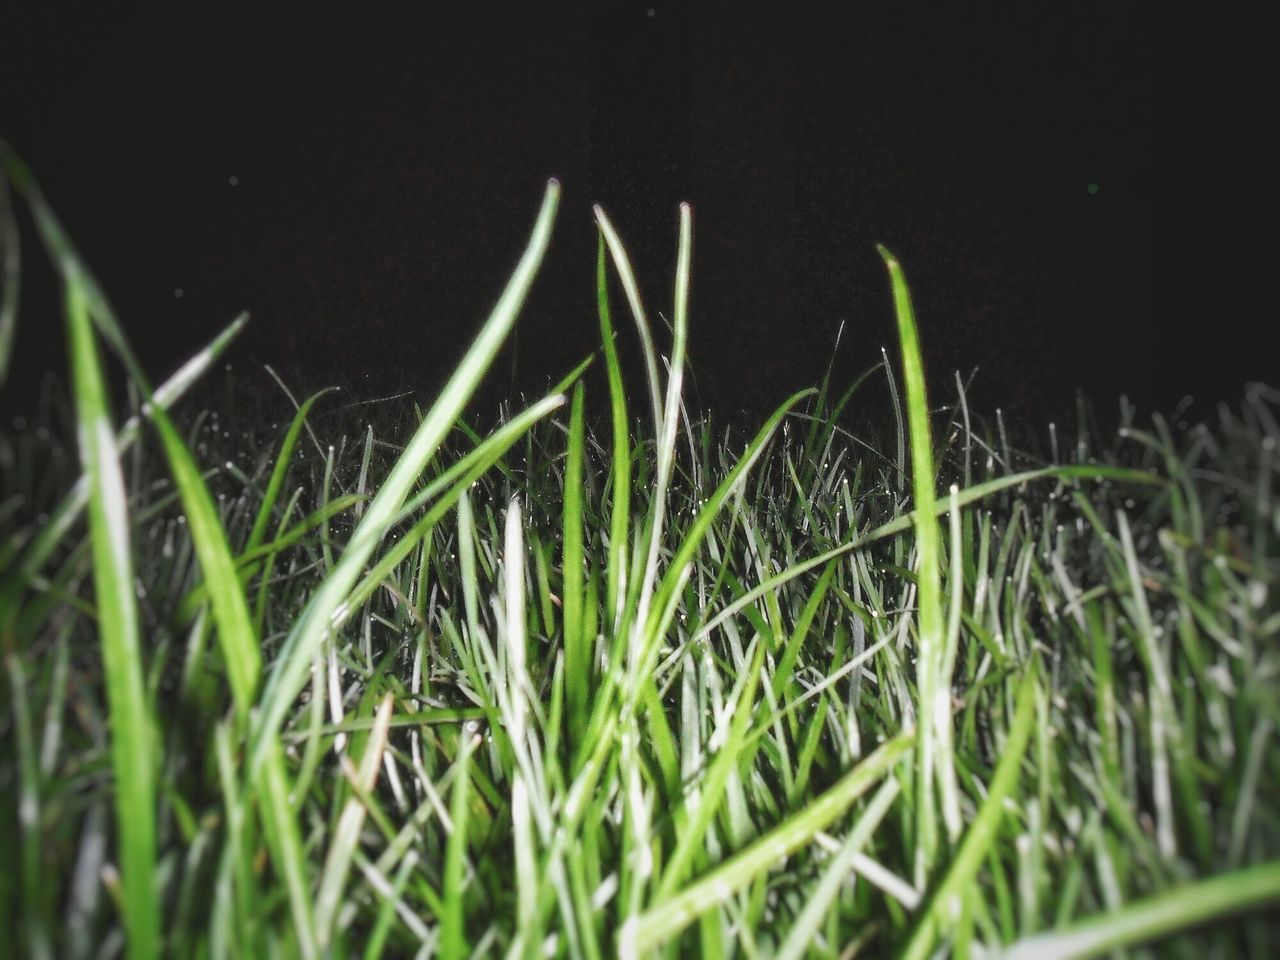 growth, plant, grass, nature, close-up, no people, outdoors, beauty in nature, freshness, day